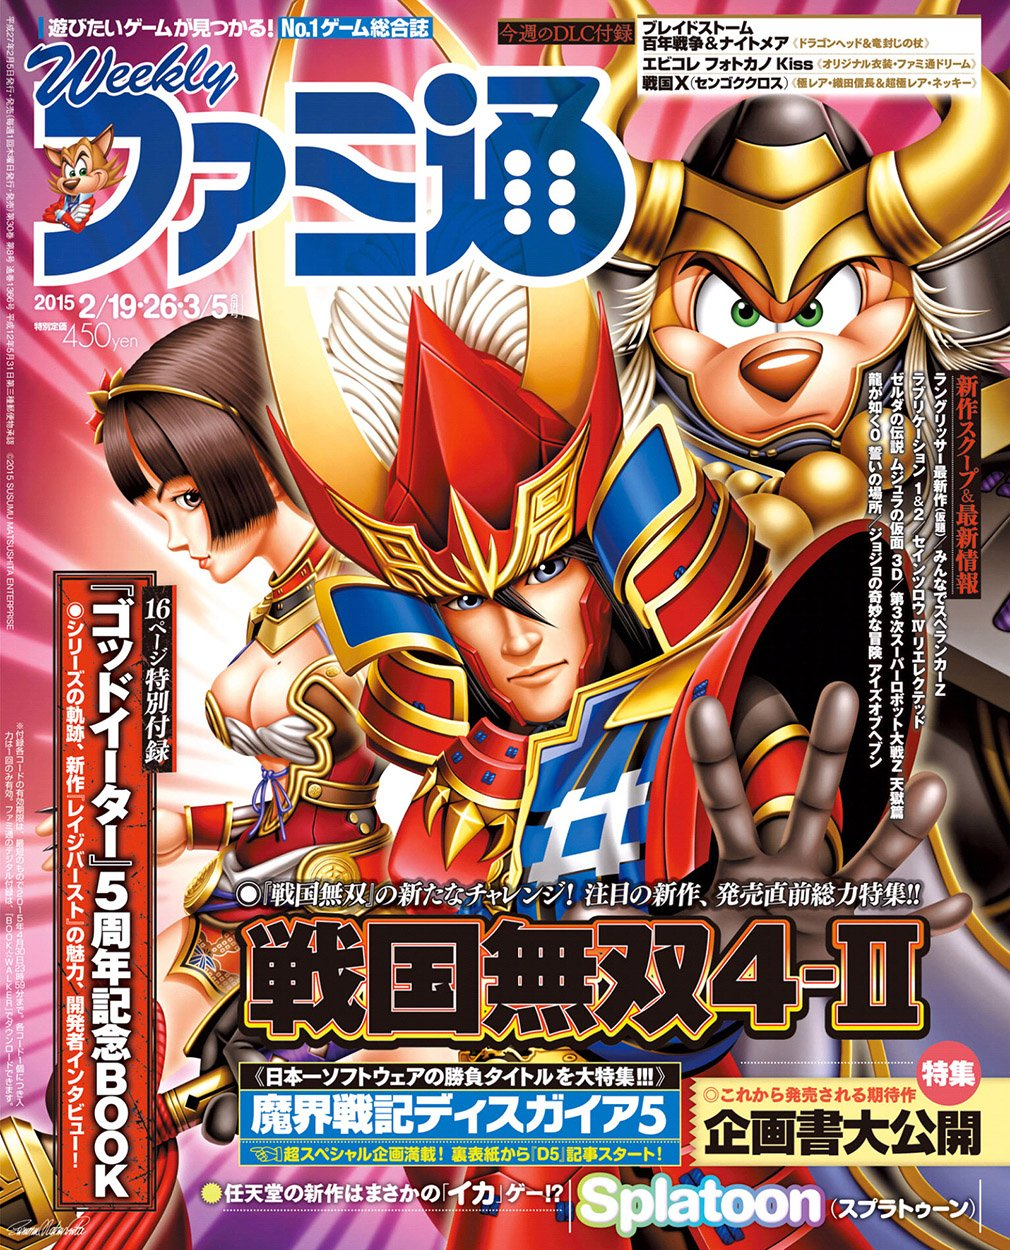 Famitsu 1366 February 19/26, March 5, 2015